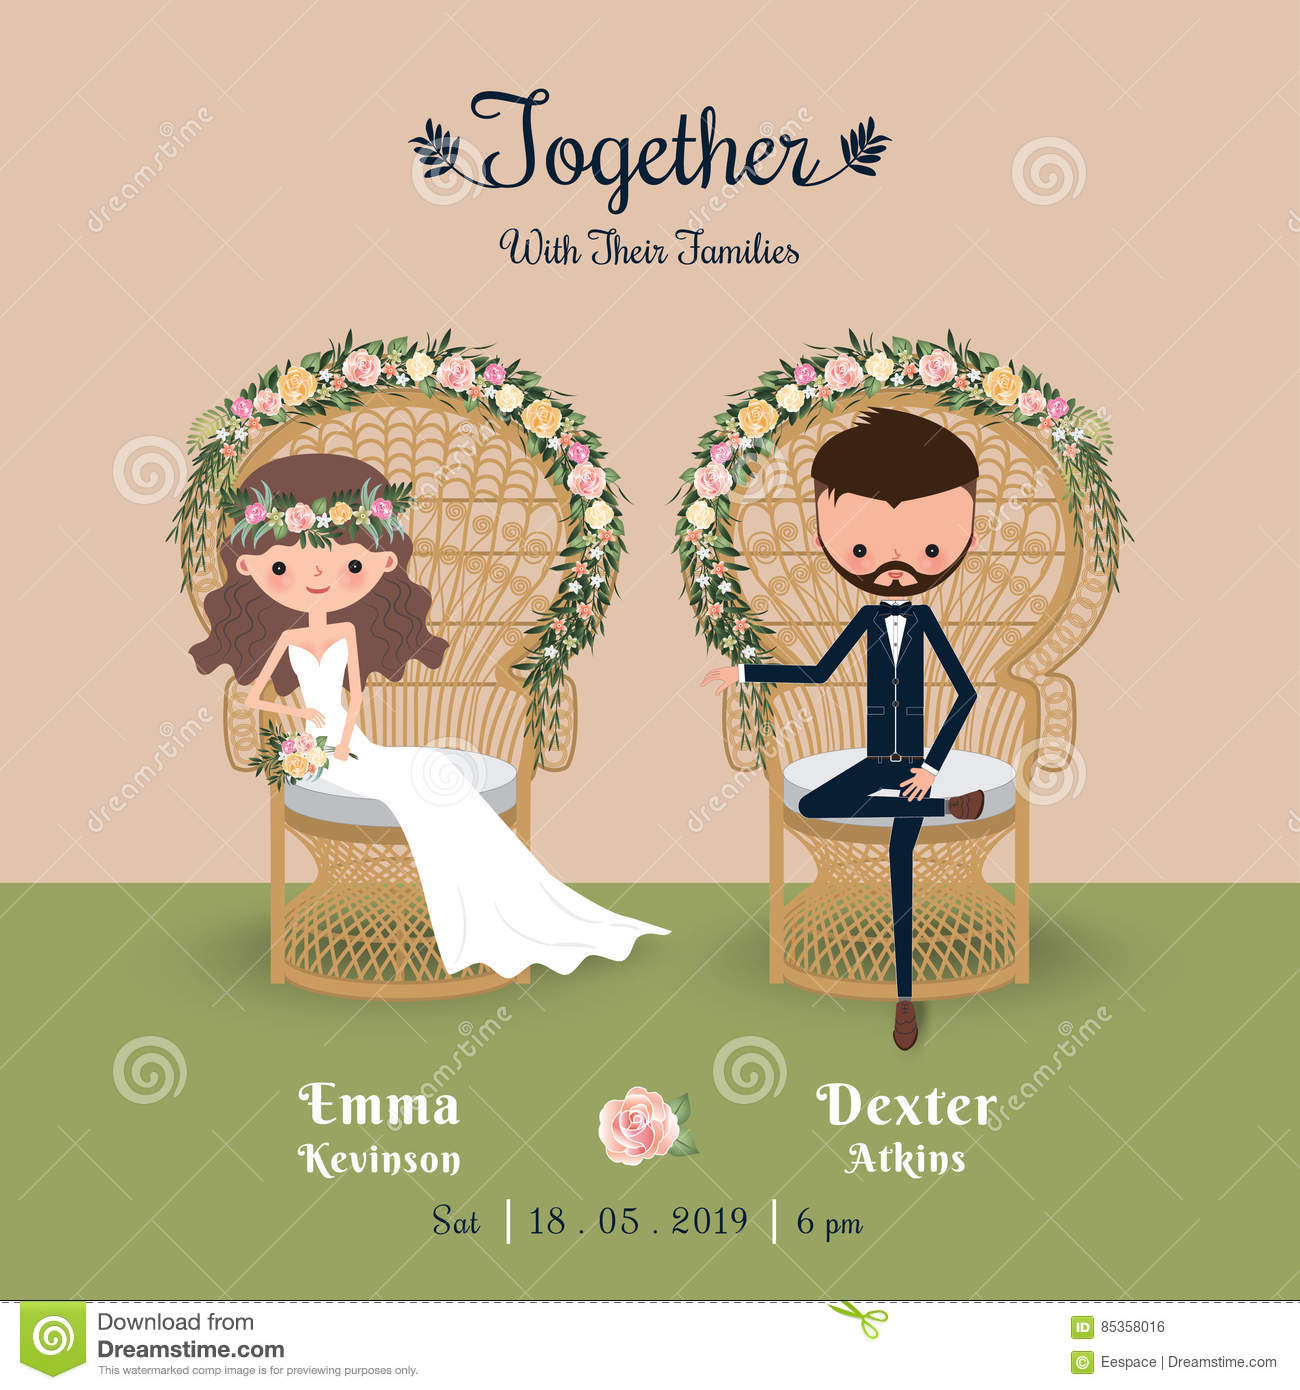 Rustic Wedding Couple Save The Date Invitation Card Floral